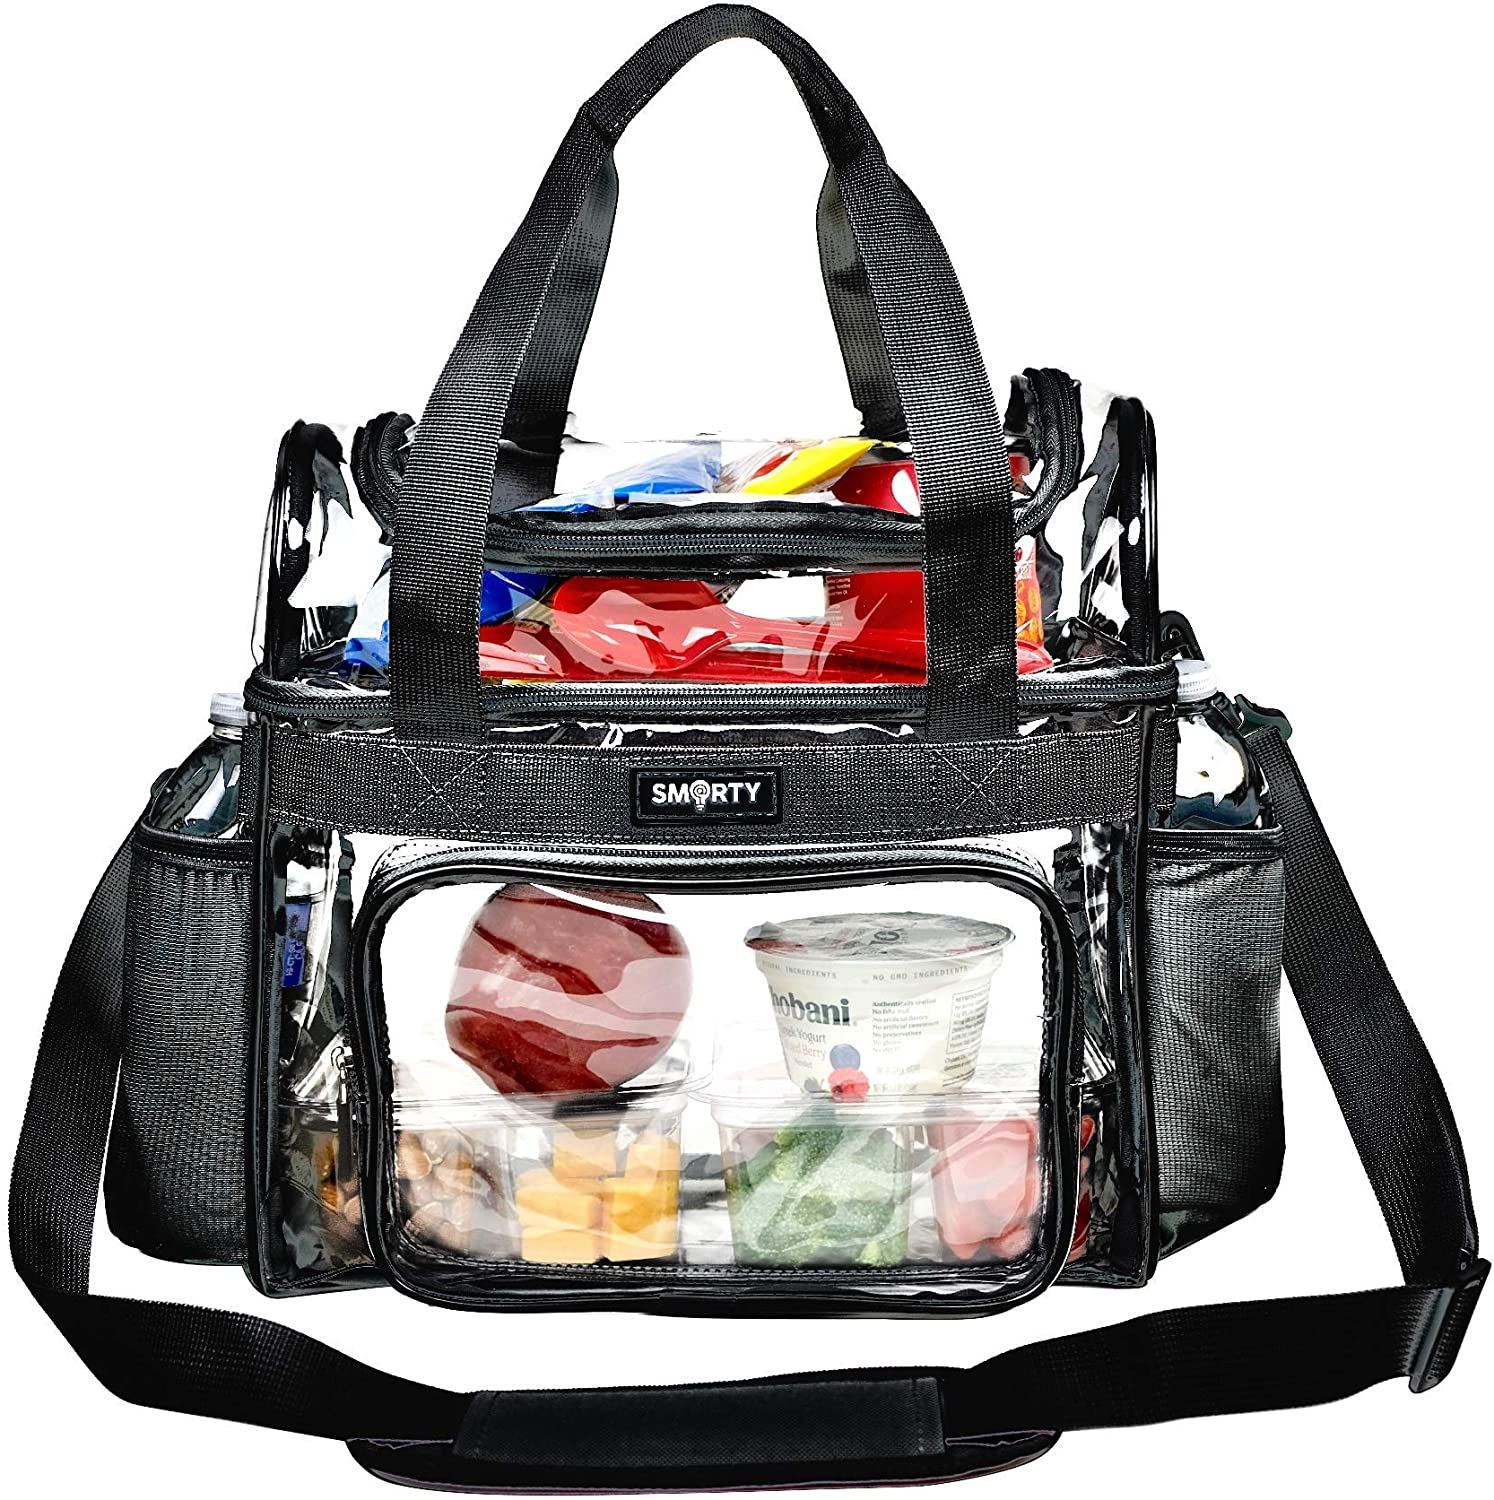 Heavy Duty Clear Lunch Tote Stadium Bag Arena Approved Crossbody Diaper Travel Makeup Cosmetic Bag for NFL Football NCAA Basketball PGA NASCAR Concerts Correctional Officers (Black, 12 x 6 x 12)